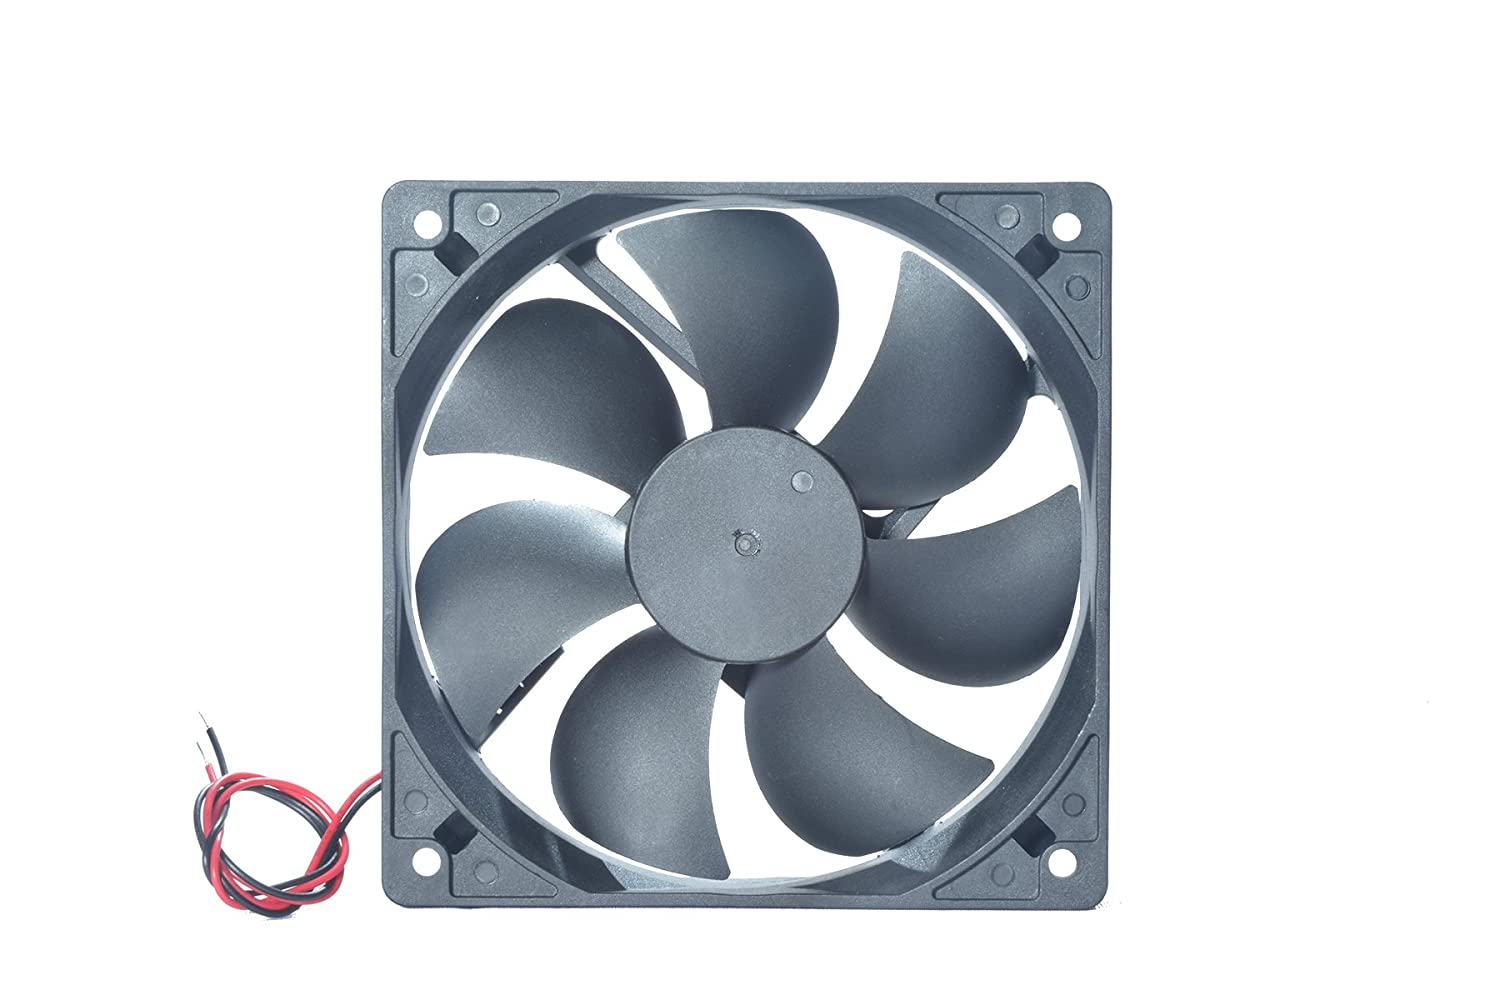 MAA-KU DC12025 Axial Case Cooling Fan. SIZE(12x12x2.5cm), SUPPLY VOLTAGE :  24VDC: Amazon.in: Computers & Accessories